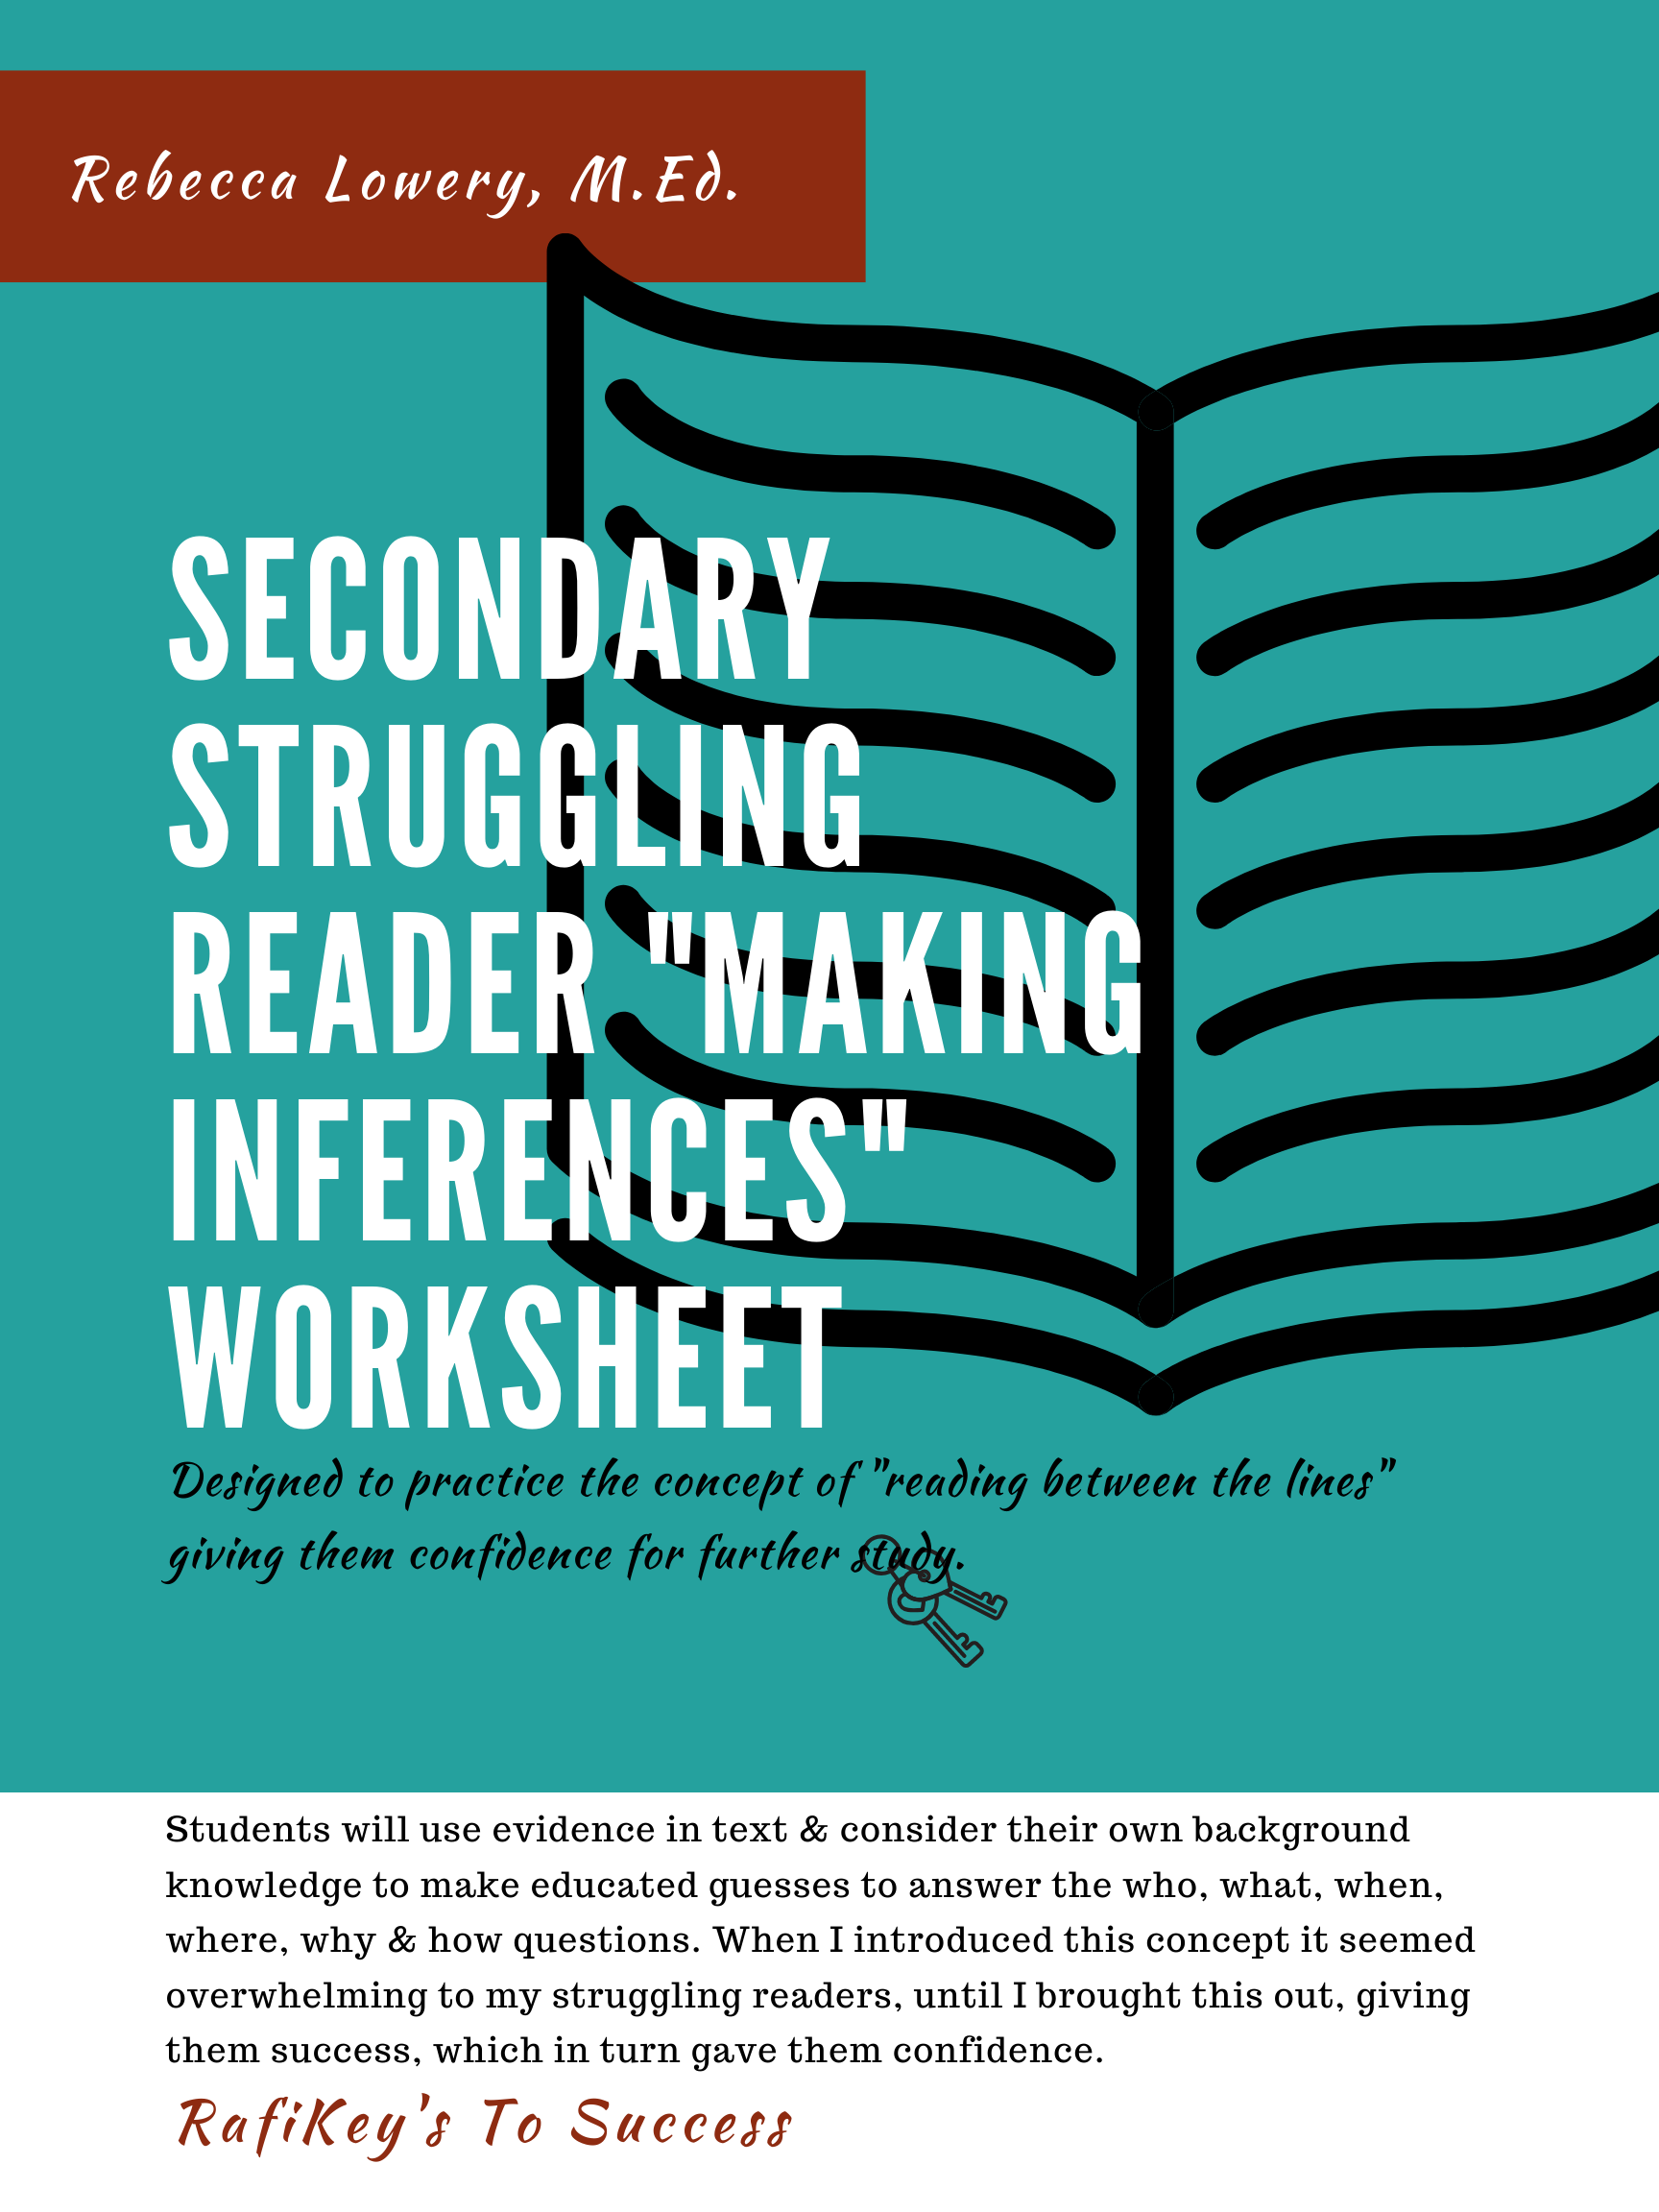 Secondary Struggling Reader Making Inferences Worksheet In